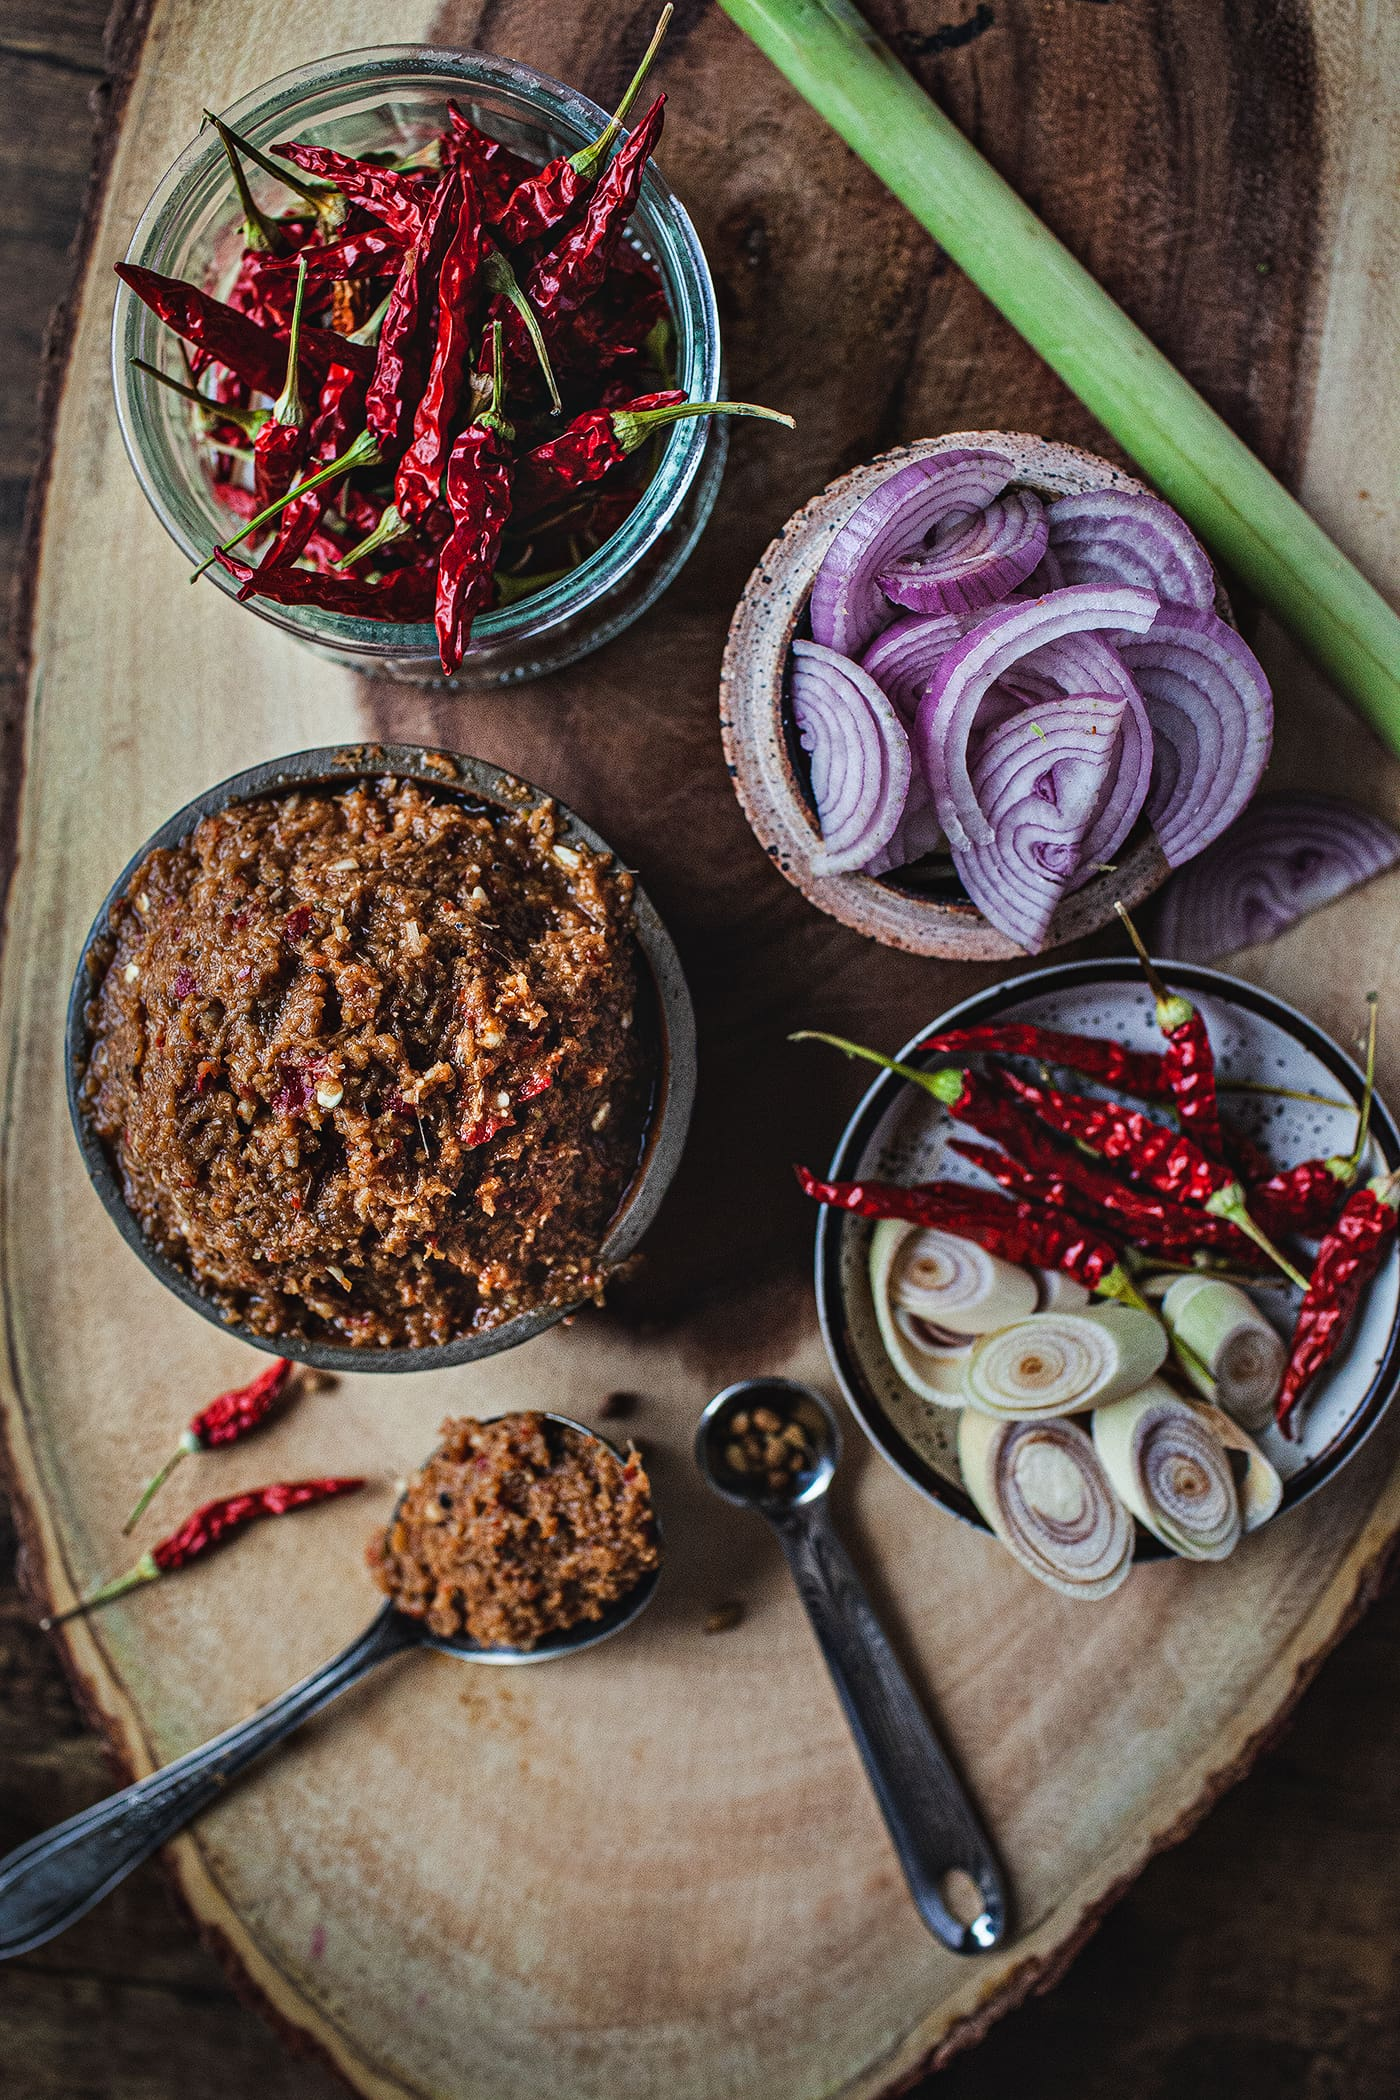 red curry paste is made from dried Thai red chilis, garlic, shallots, galangal, kaffir lime rind and leaves, lemongrass, cilantro roots and shrimp paste. These ingredients are typically ground together in a granite mortar and pestle to a paste and that paste is then used to make green curry paste. #redcurrypaste #thaipeppers #thairedcurry #redcurry